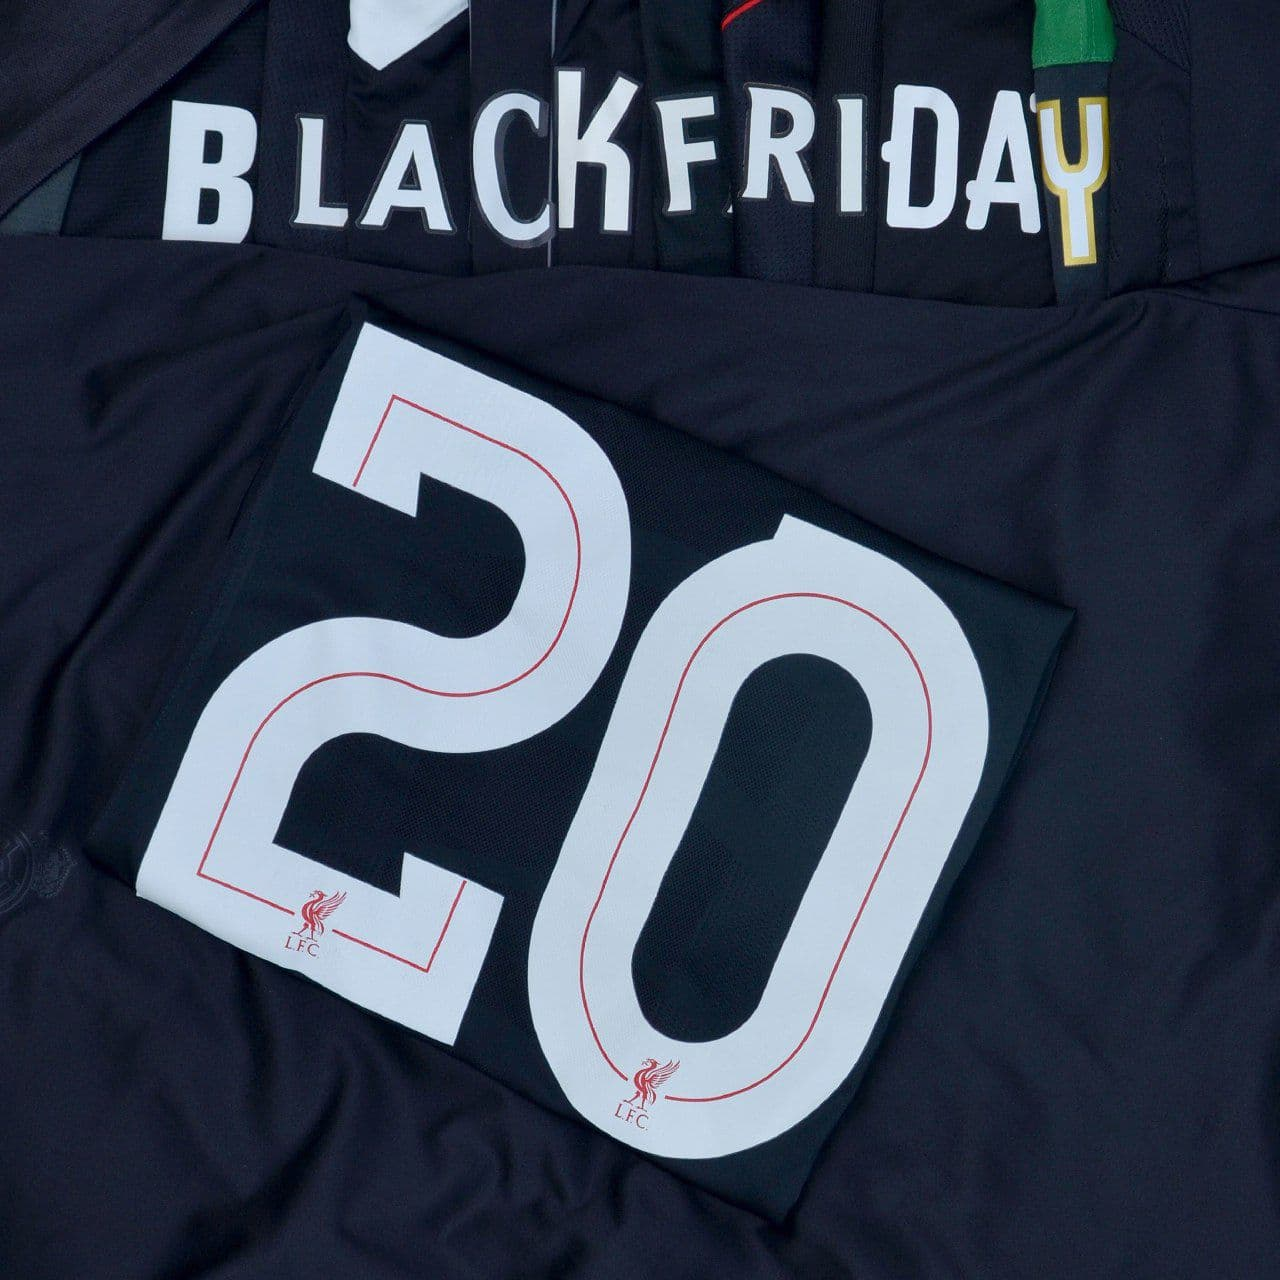 Black Friday is officially launched!